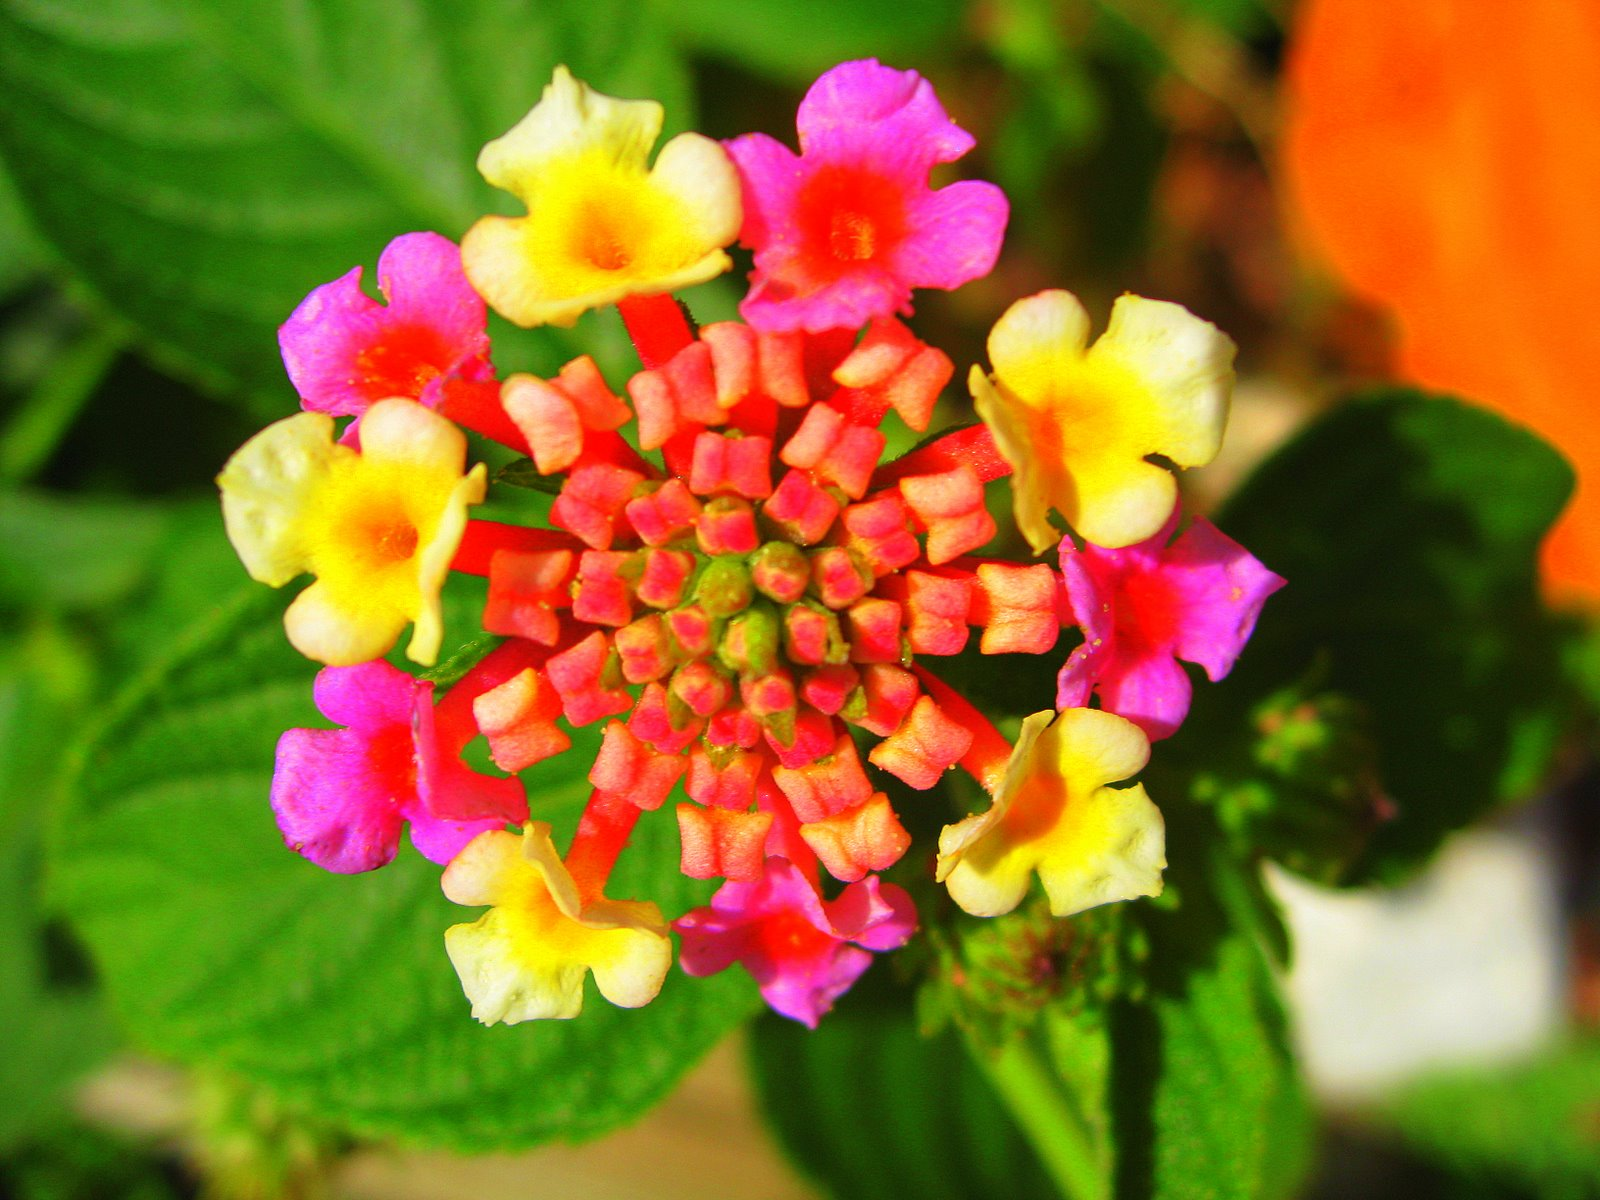 FLOWERS OF THE BLUE PLANET: EXOTIC FLOWERS